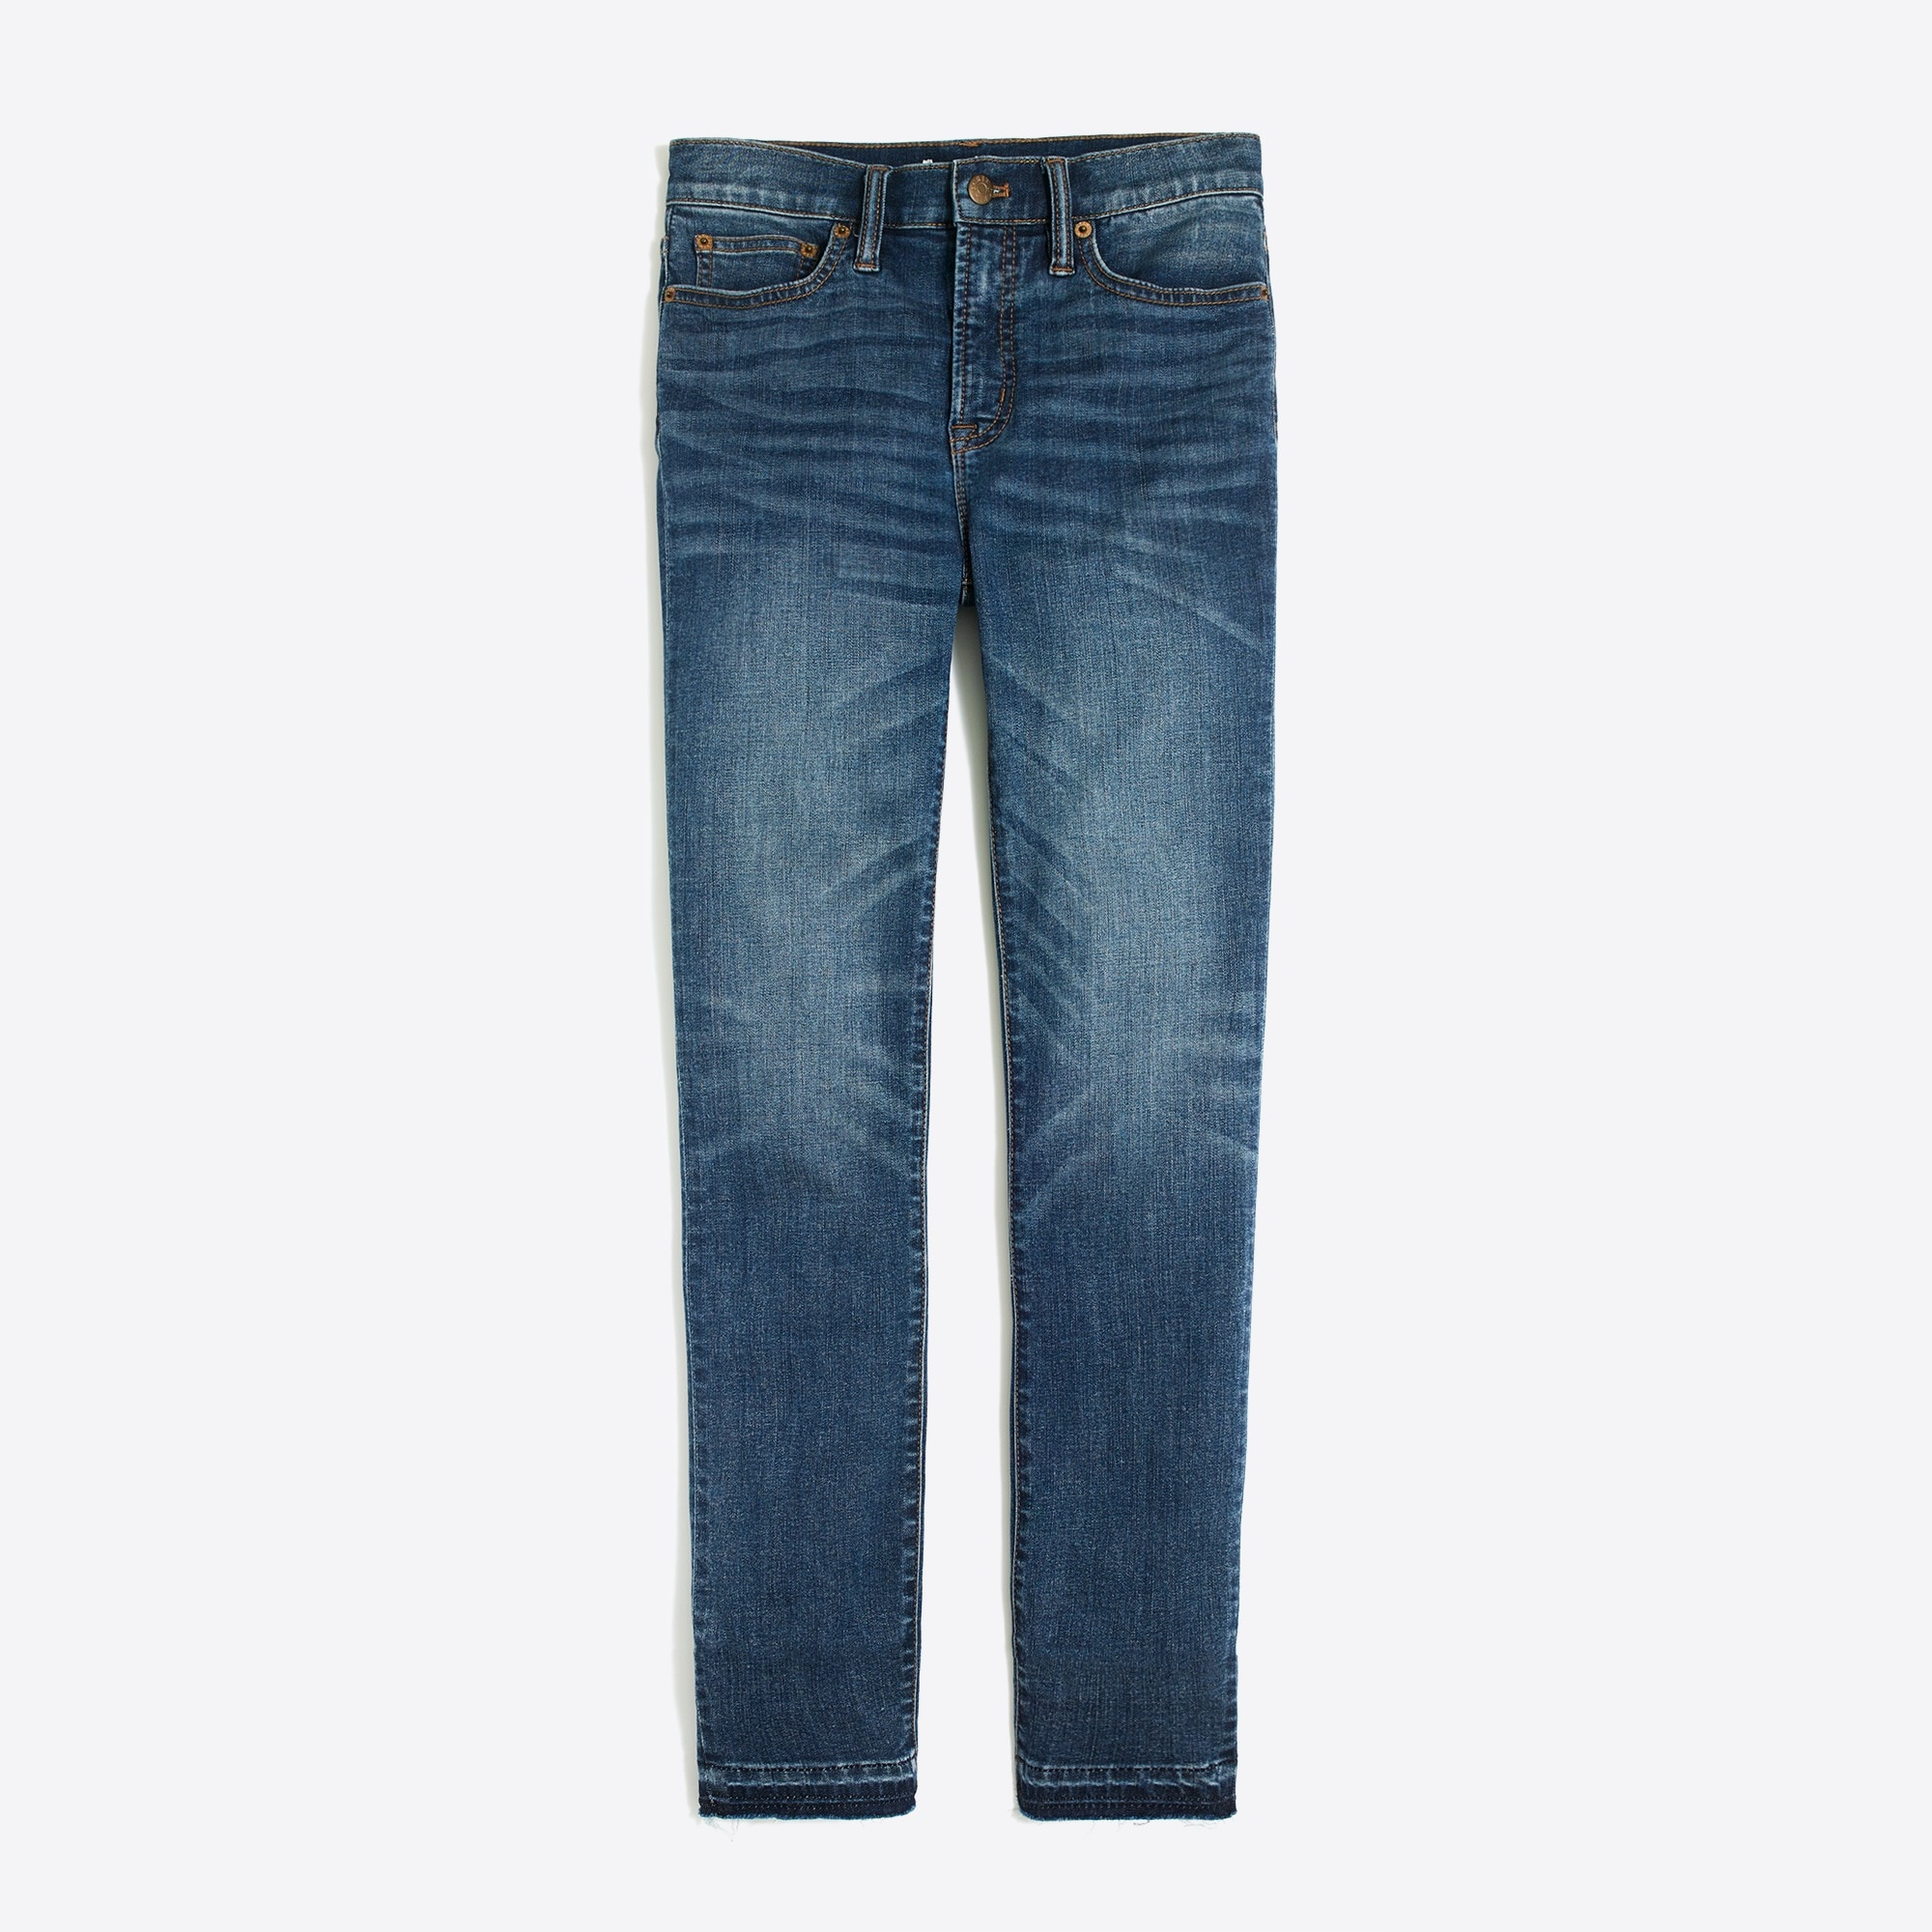 "8"" Mid-rise skinny jean with let-down hem"